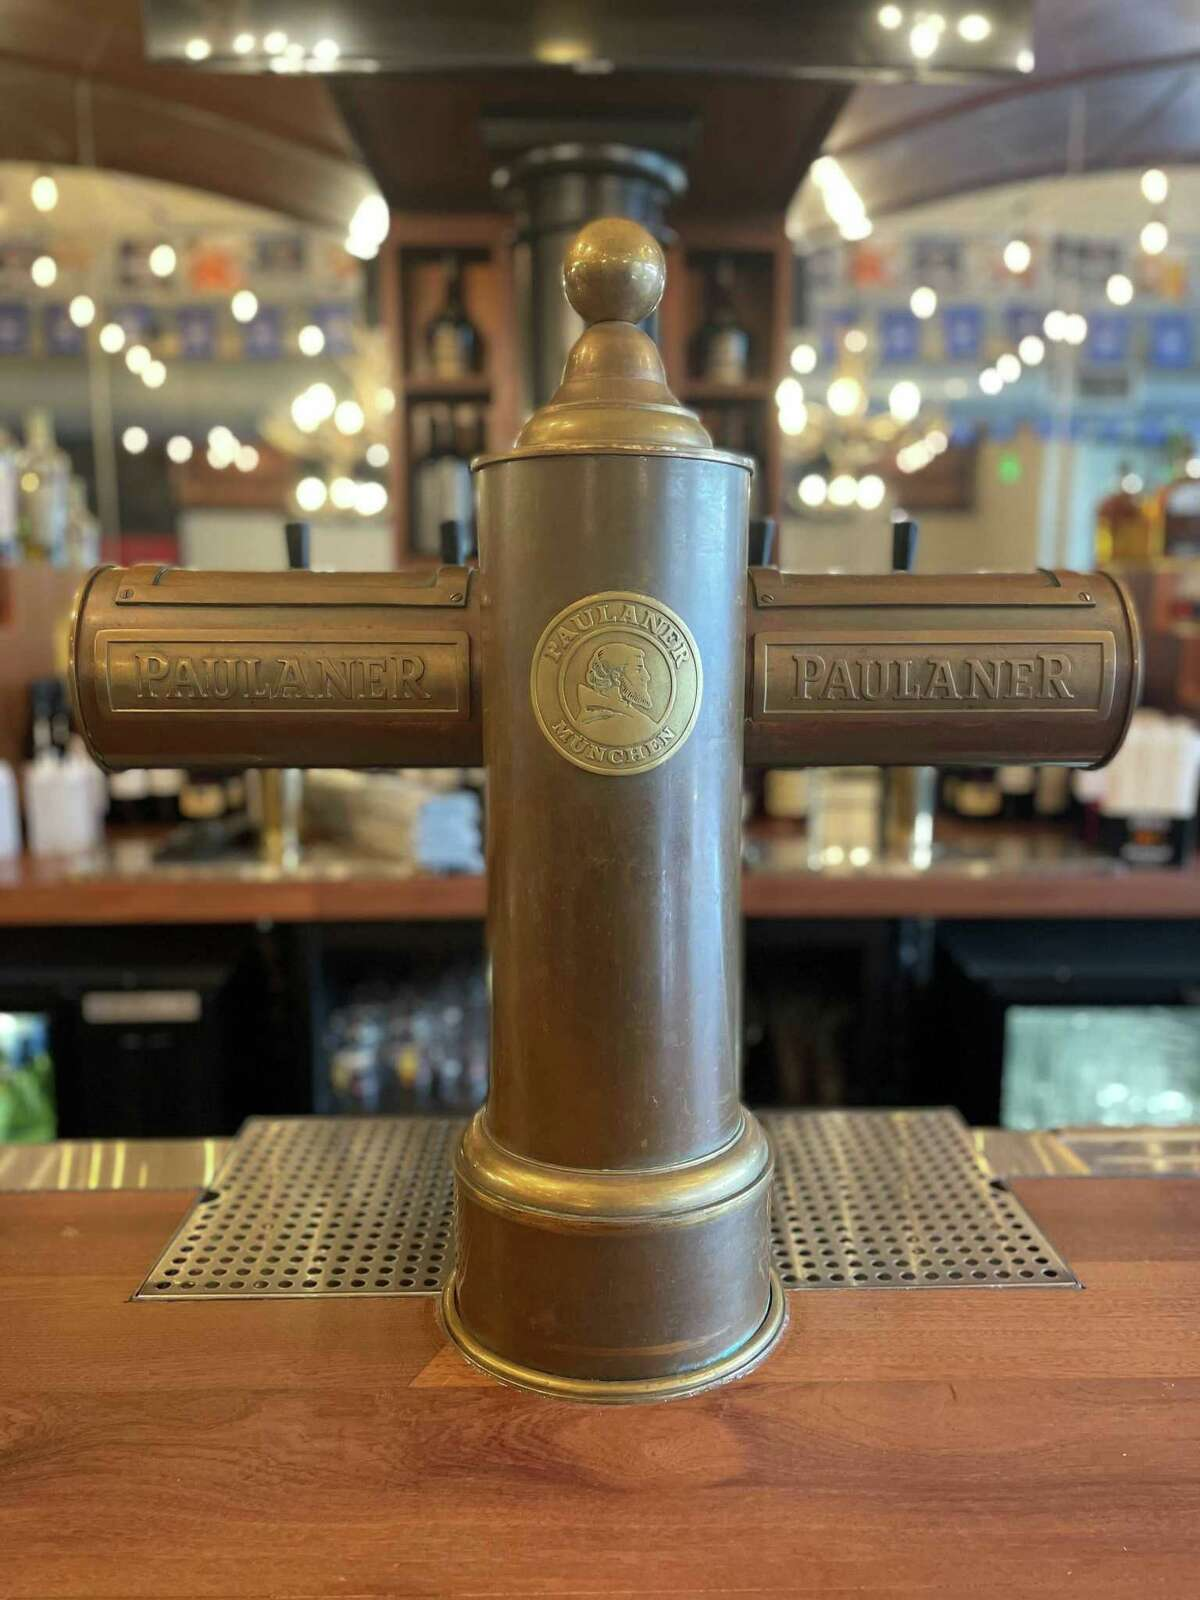 Wurst Haus plans to serve 14 lines of German beers, with another four lines dedicated to beers from Connecticut, Massachusetts and Rhode Island. A signature boot-shaped mug is available for larger pours.